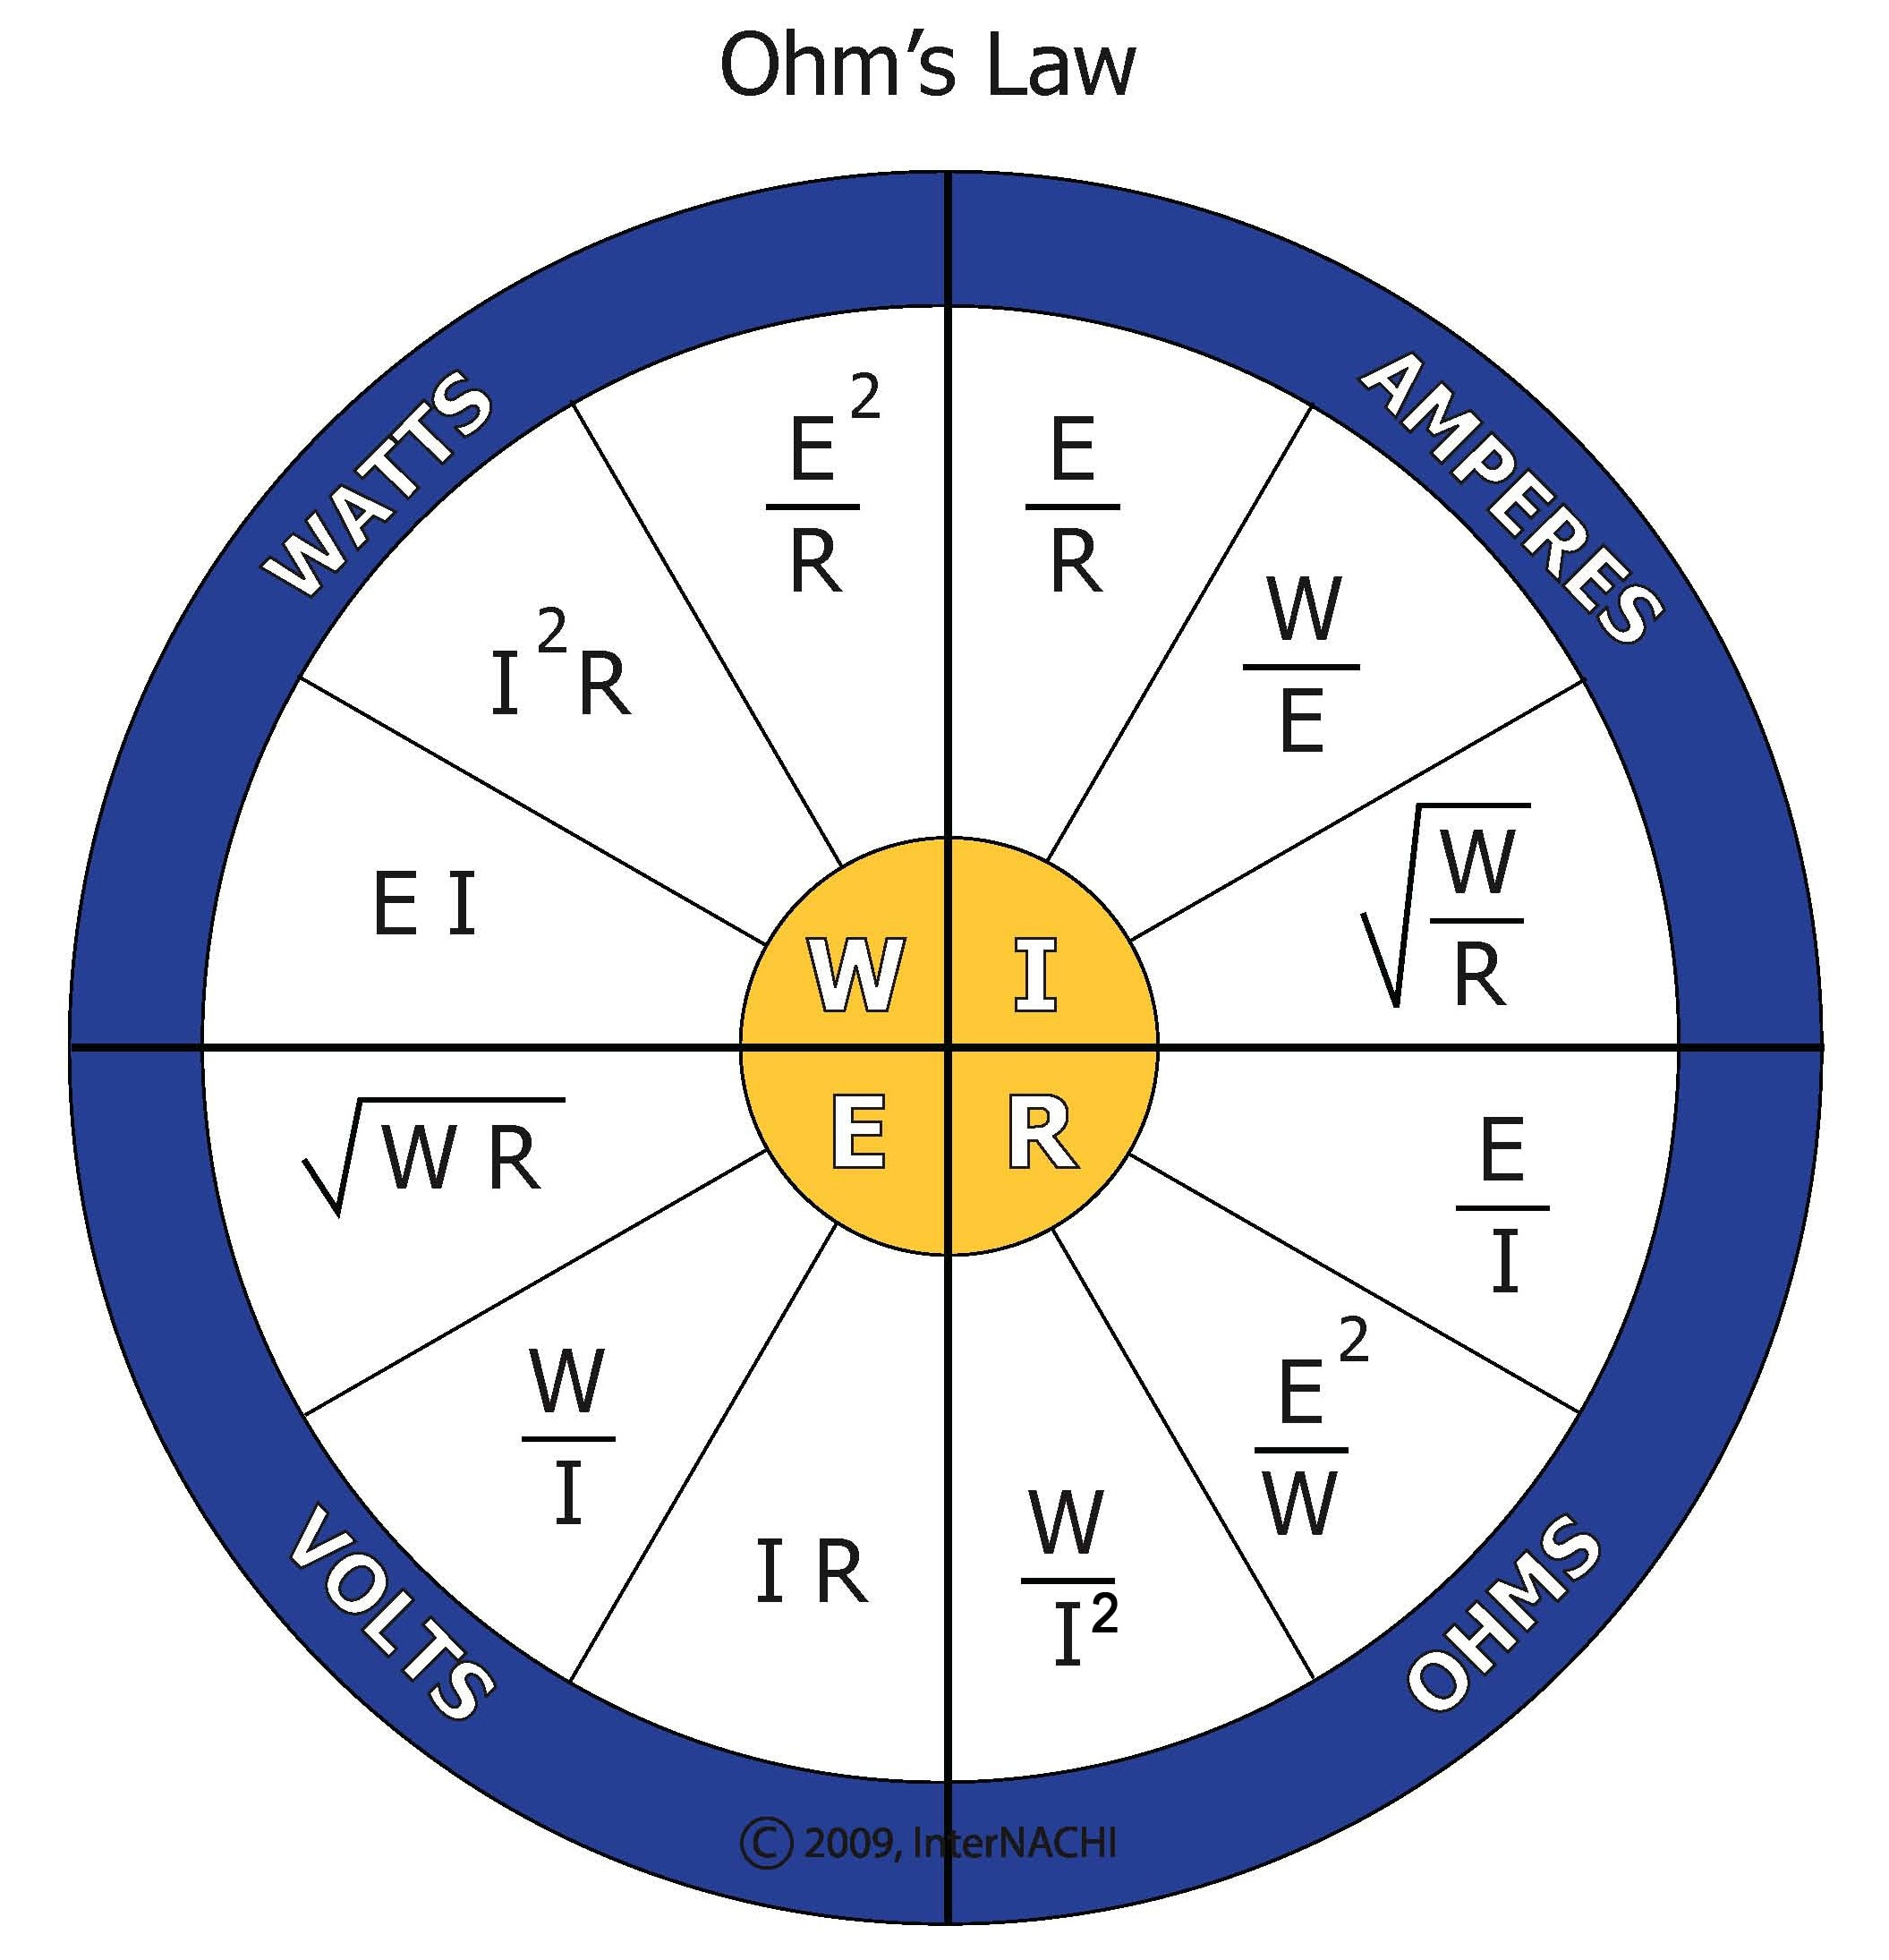 Ohm's law (named after the German physicist Georg Ohm) defines the relationship between Voltage, Current and Resistance. Where I is the current, measured in Amperes (Amps/A). R is the resistance, measured in Ohms (Ω). E is the electrical potential (voltage). And W is power, measured in Watts.